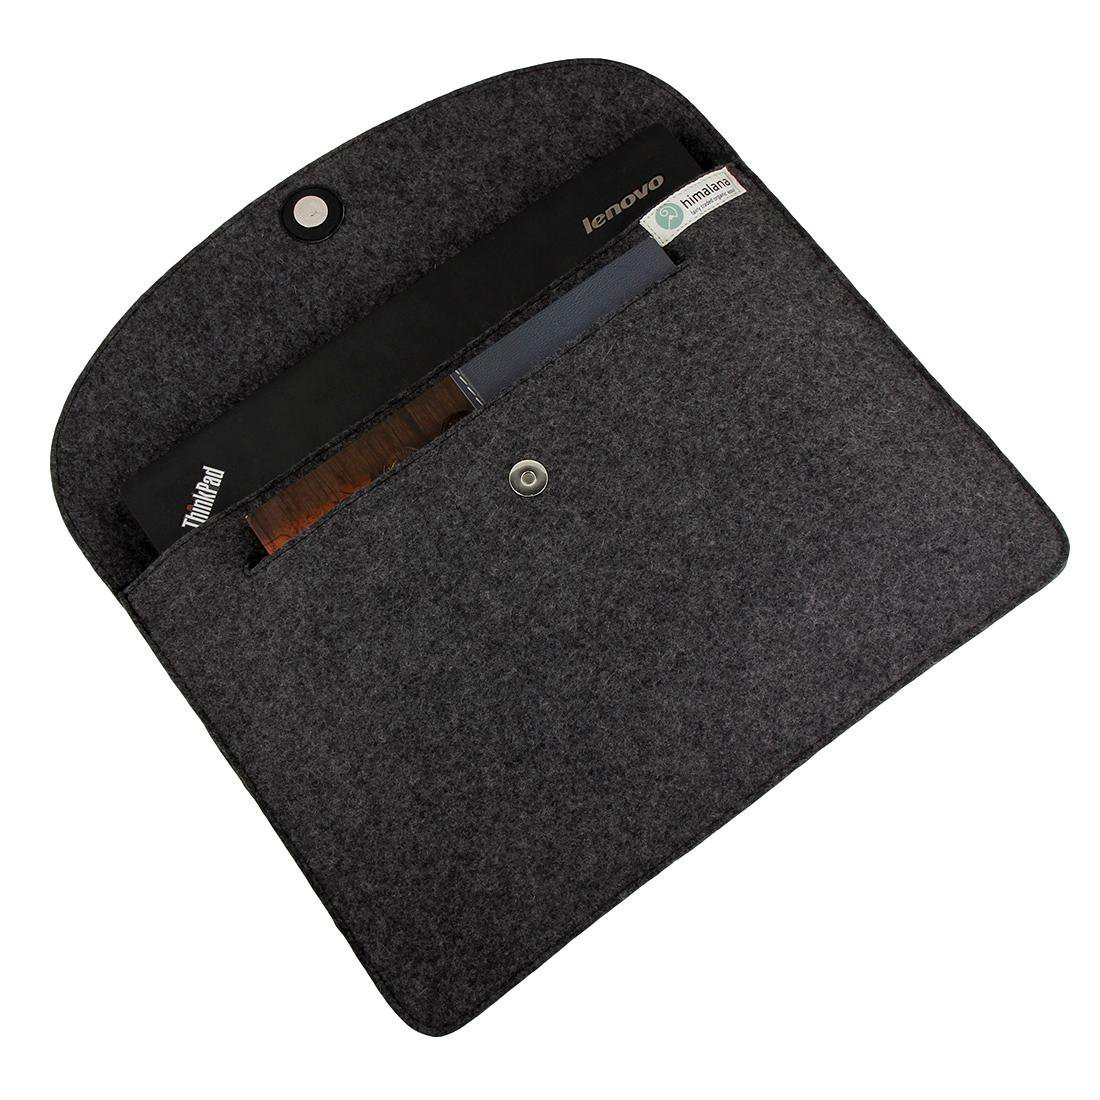 Mojopanda Virgin Organic Wool Felt 13-13.5 Inch Macbooks, Laptop Grey Sleeve Case Carrying Bag With 2 Back Pouches For Mobile Phones And An Inner Packet For Tab, Ipad Or Power Chord. by MOJO PANDA (Image #1)